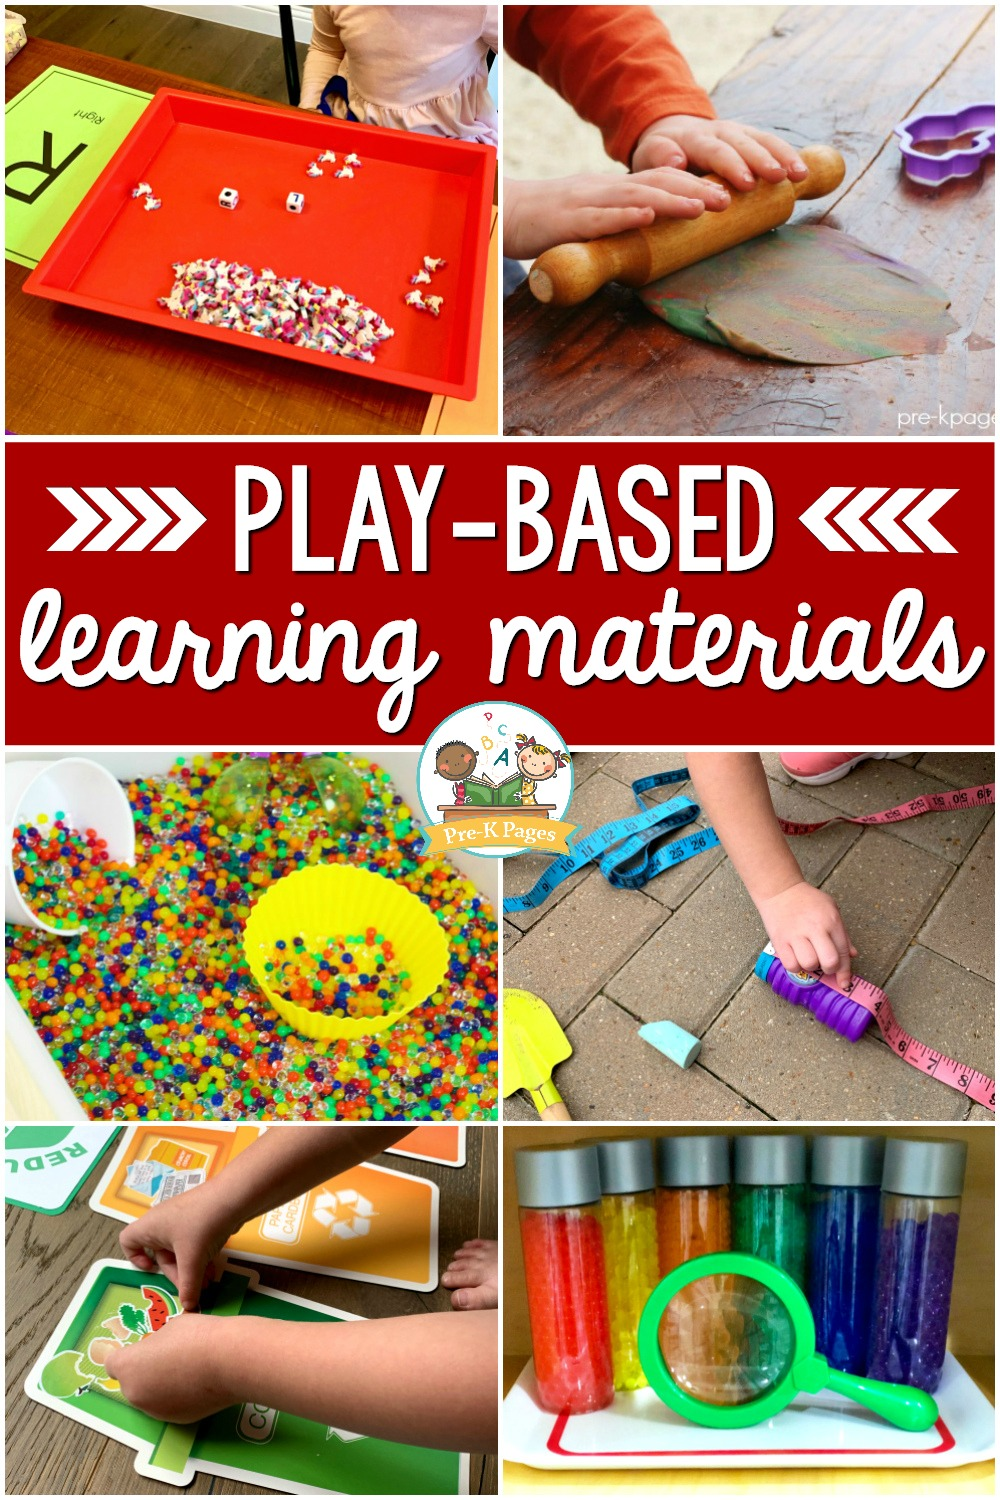 Play Based Learning Materials for preschool